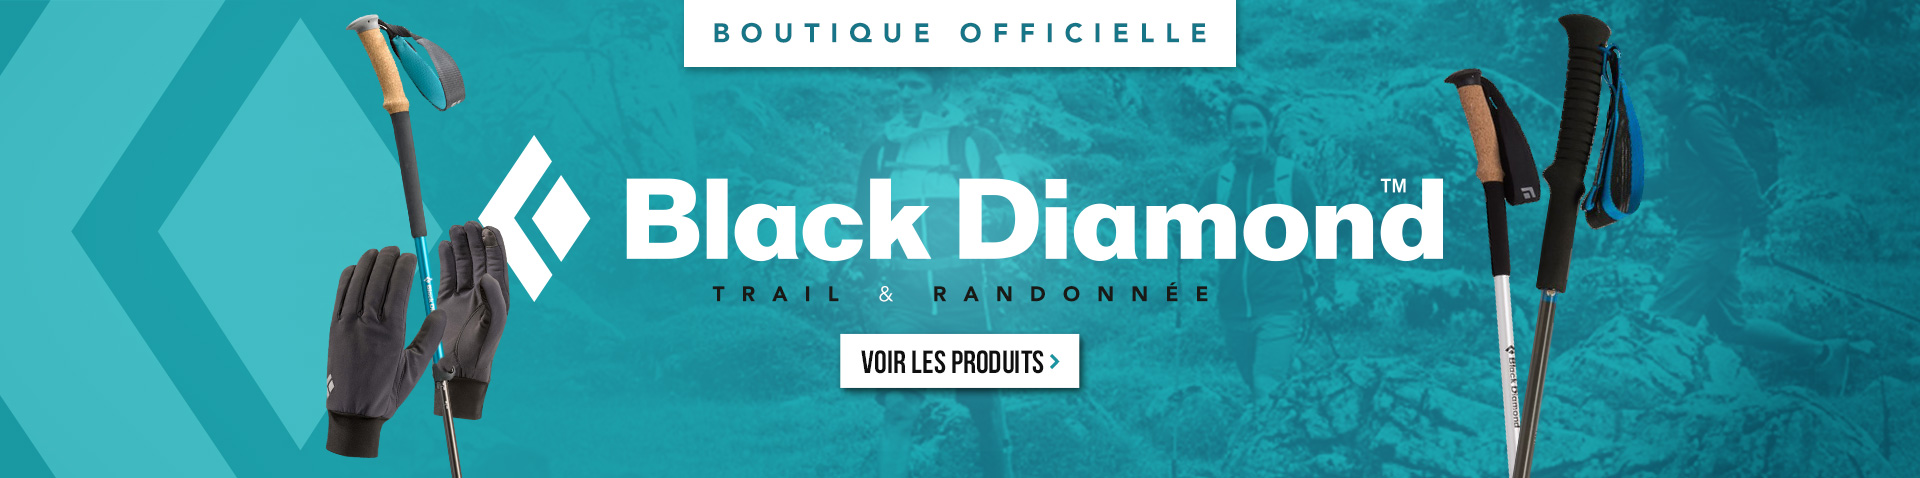 Boutique Officielle Black Diamond